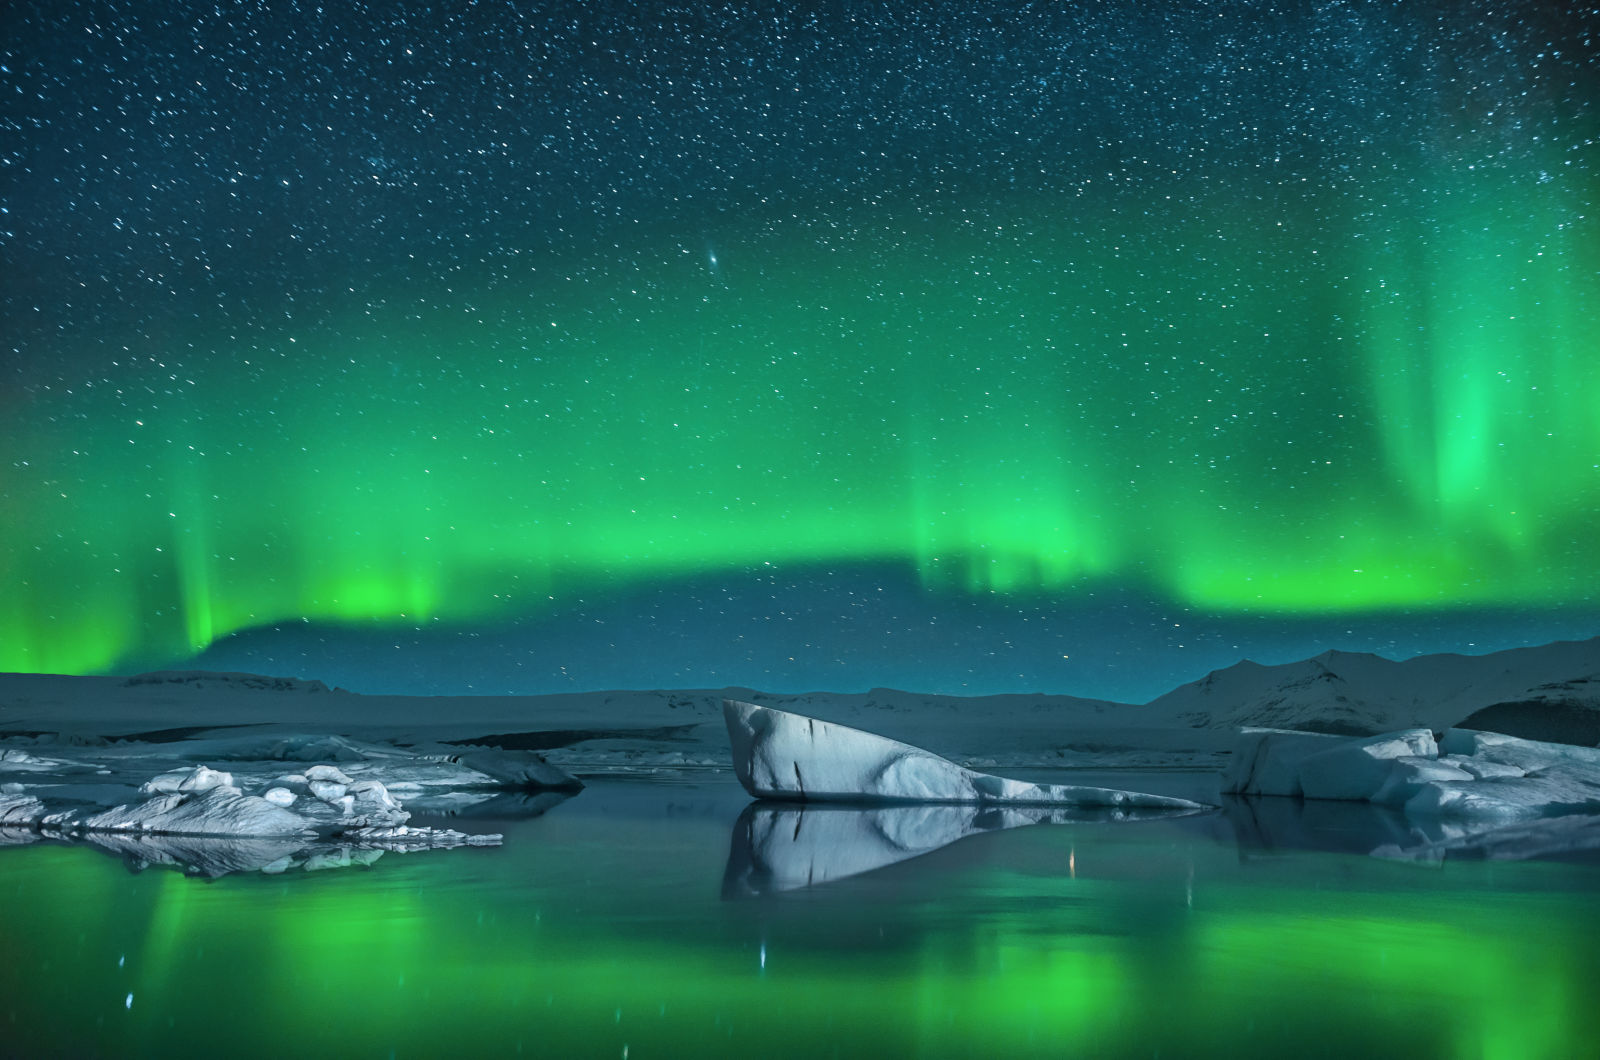 Atmosphere, Atmospheric phenomenon, Aurora